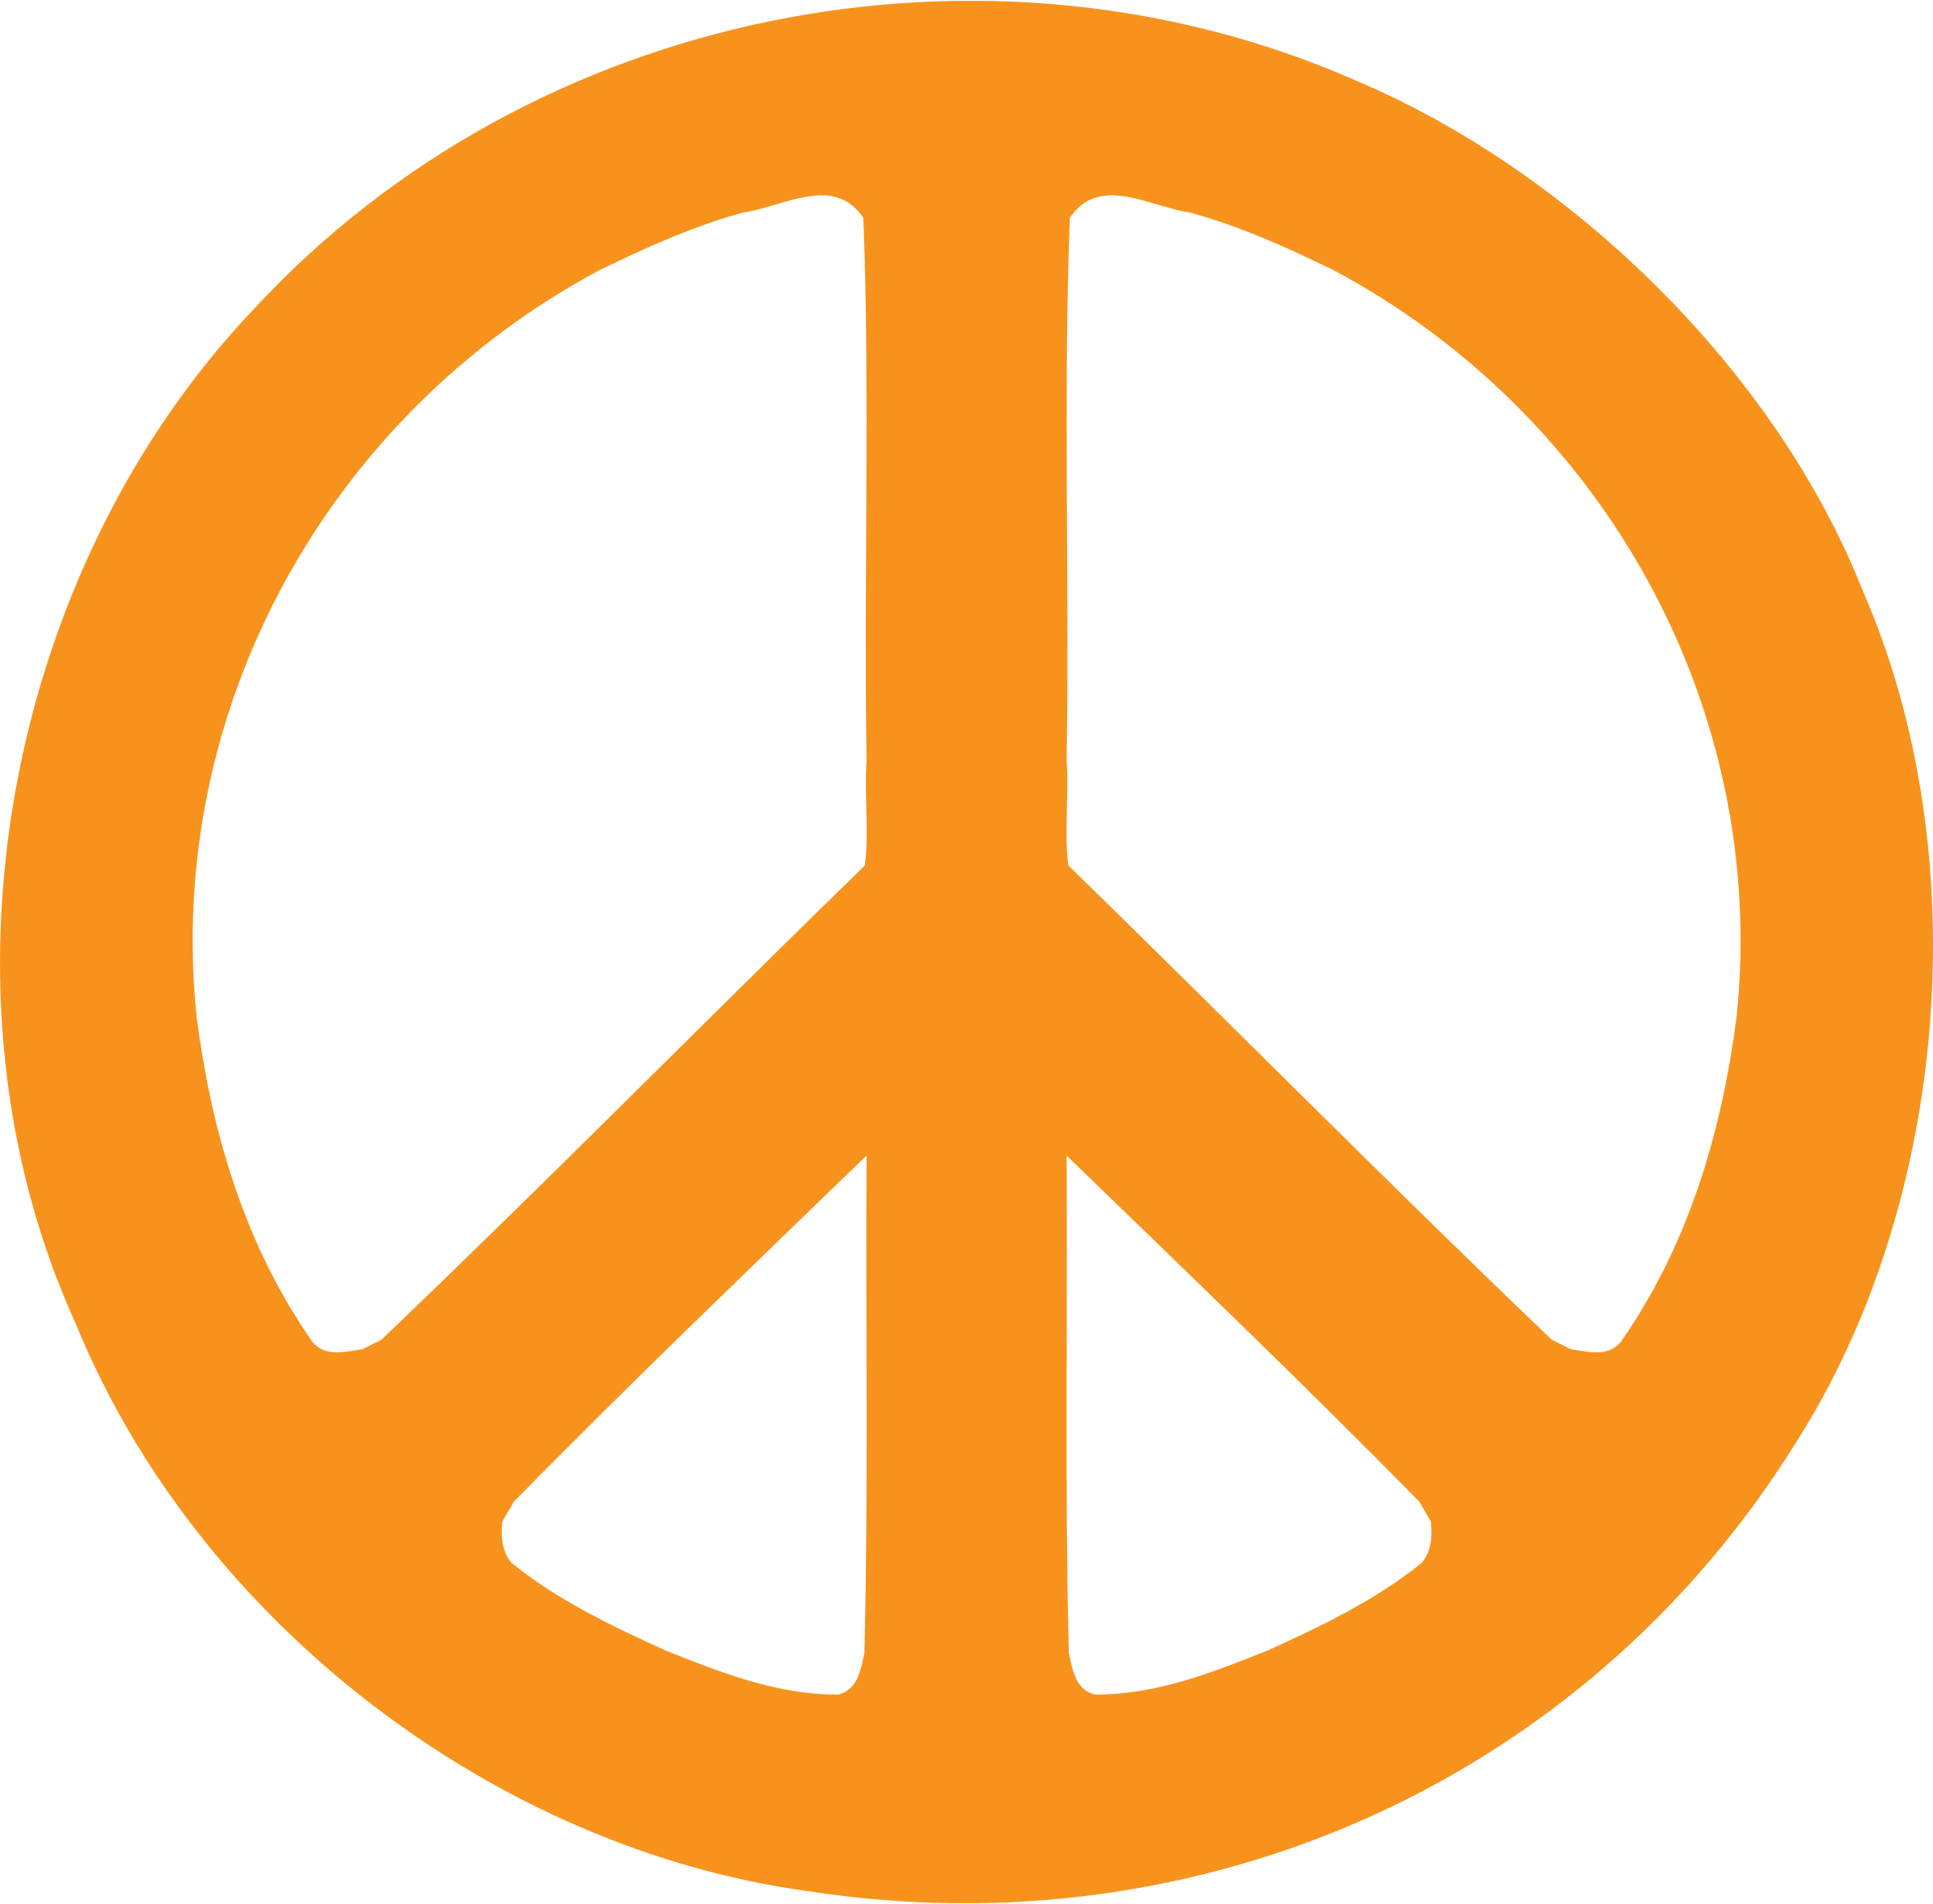 Peace Sign clipart peace and love All transparent Symbol PNG Advertisement